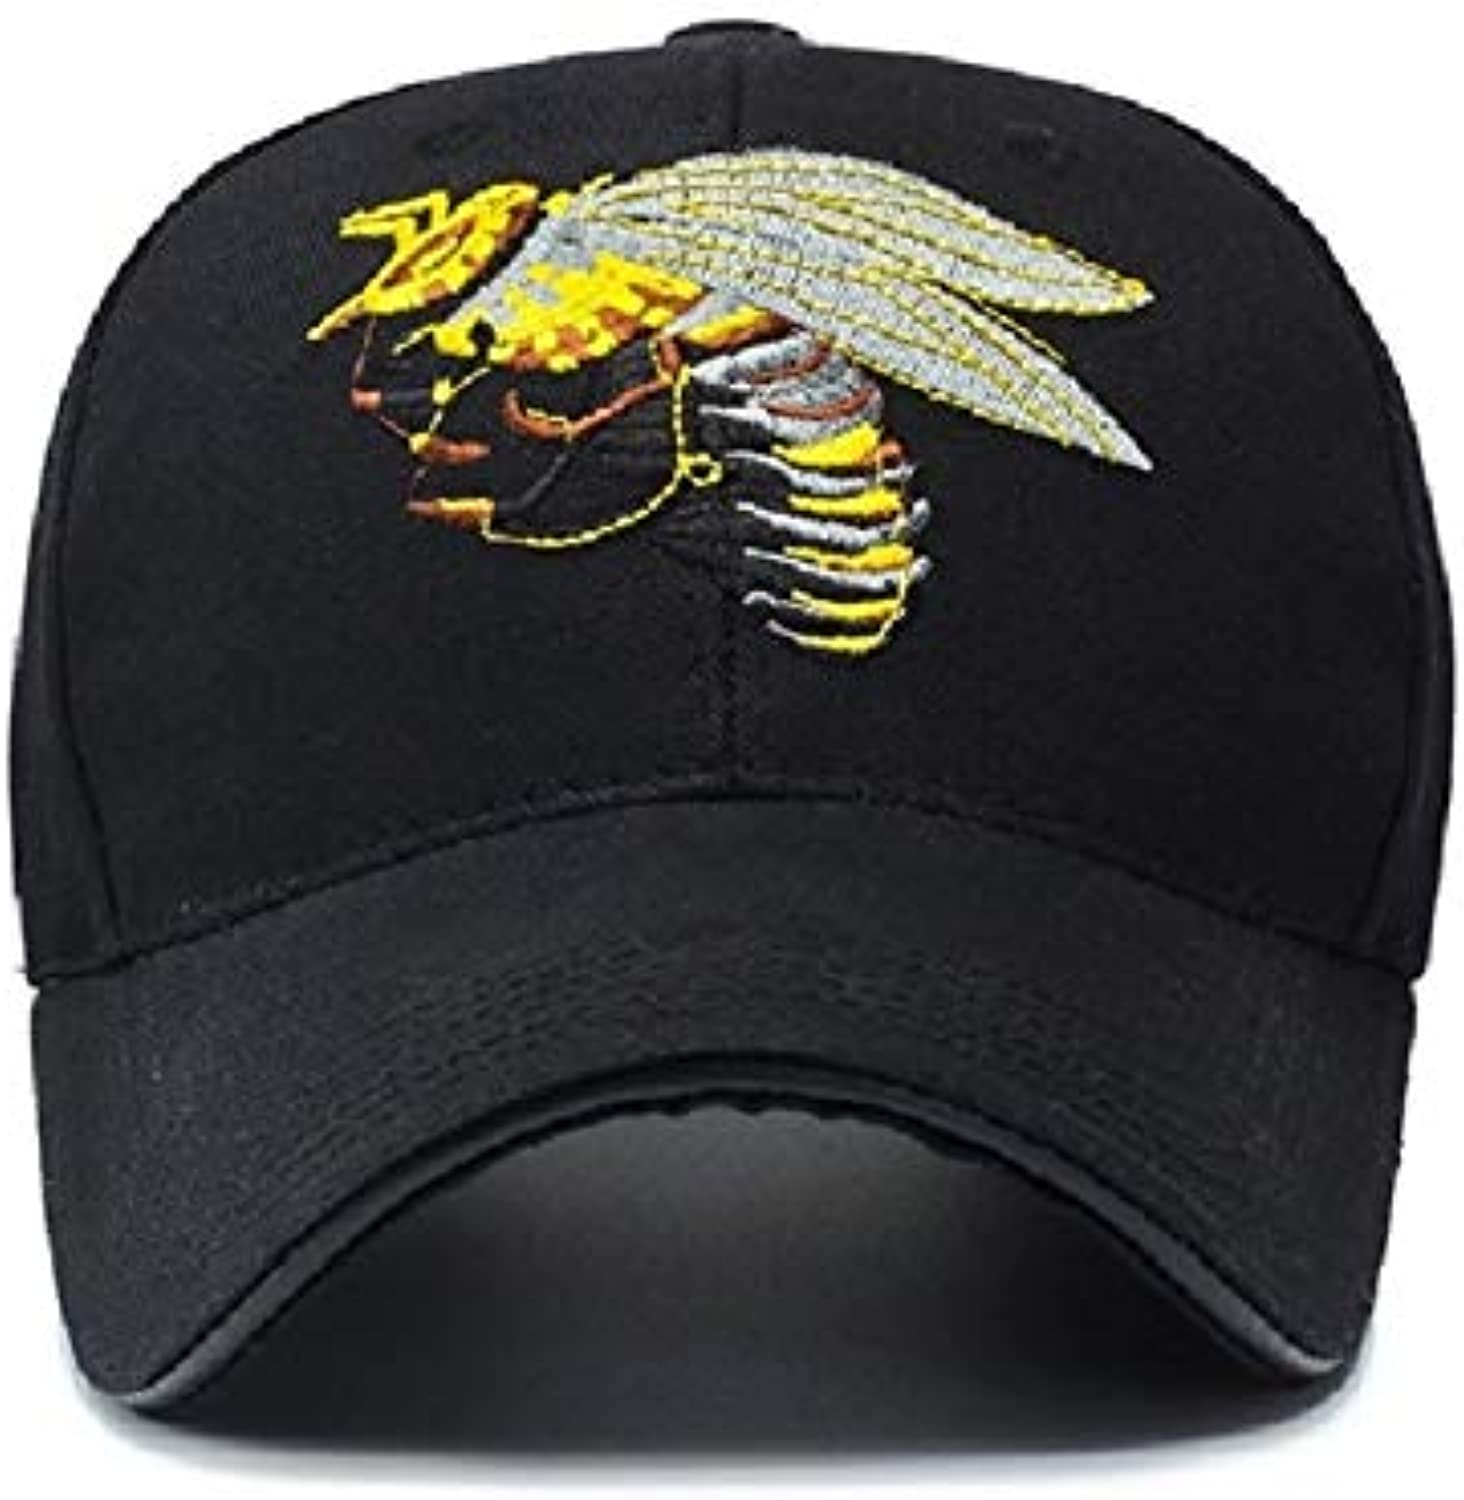 AAMOUISE Baseball Cap Spring and Summer Unisex Baseball Cap with Embroidery Logo PreCurved Visor Breathable Black Adjustable Buttonhole dad hat Novel